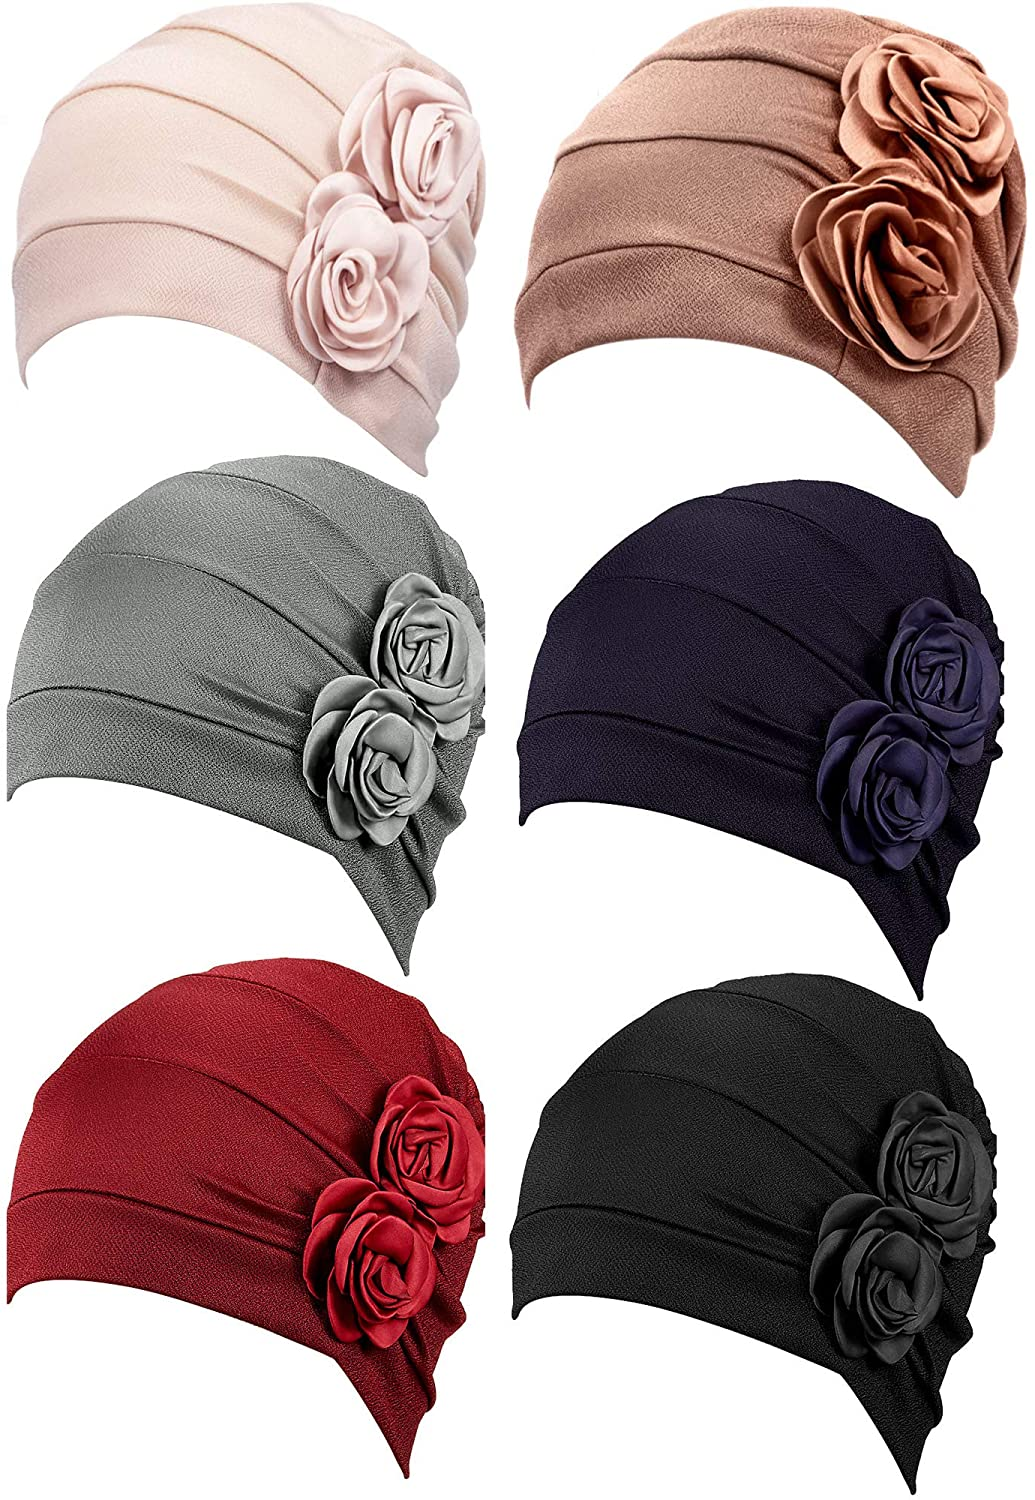 6 Pieces Women Turban Flower Caps Elastic Beanie Headscarf Vintage Headwrap Hats(2 Flowers Style)